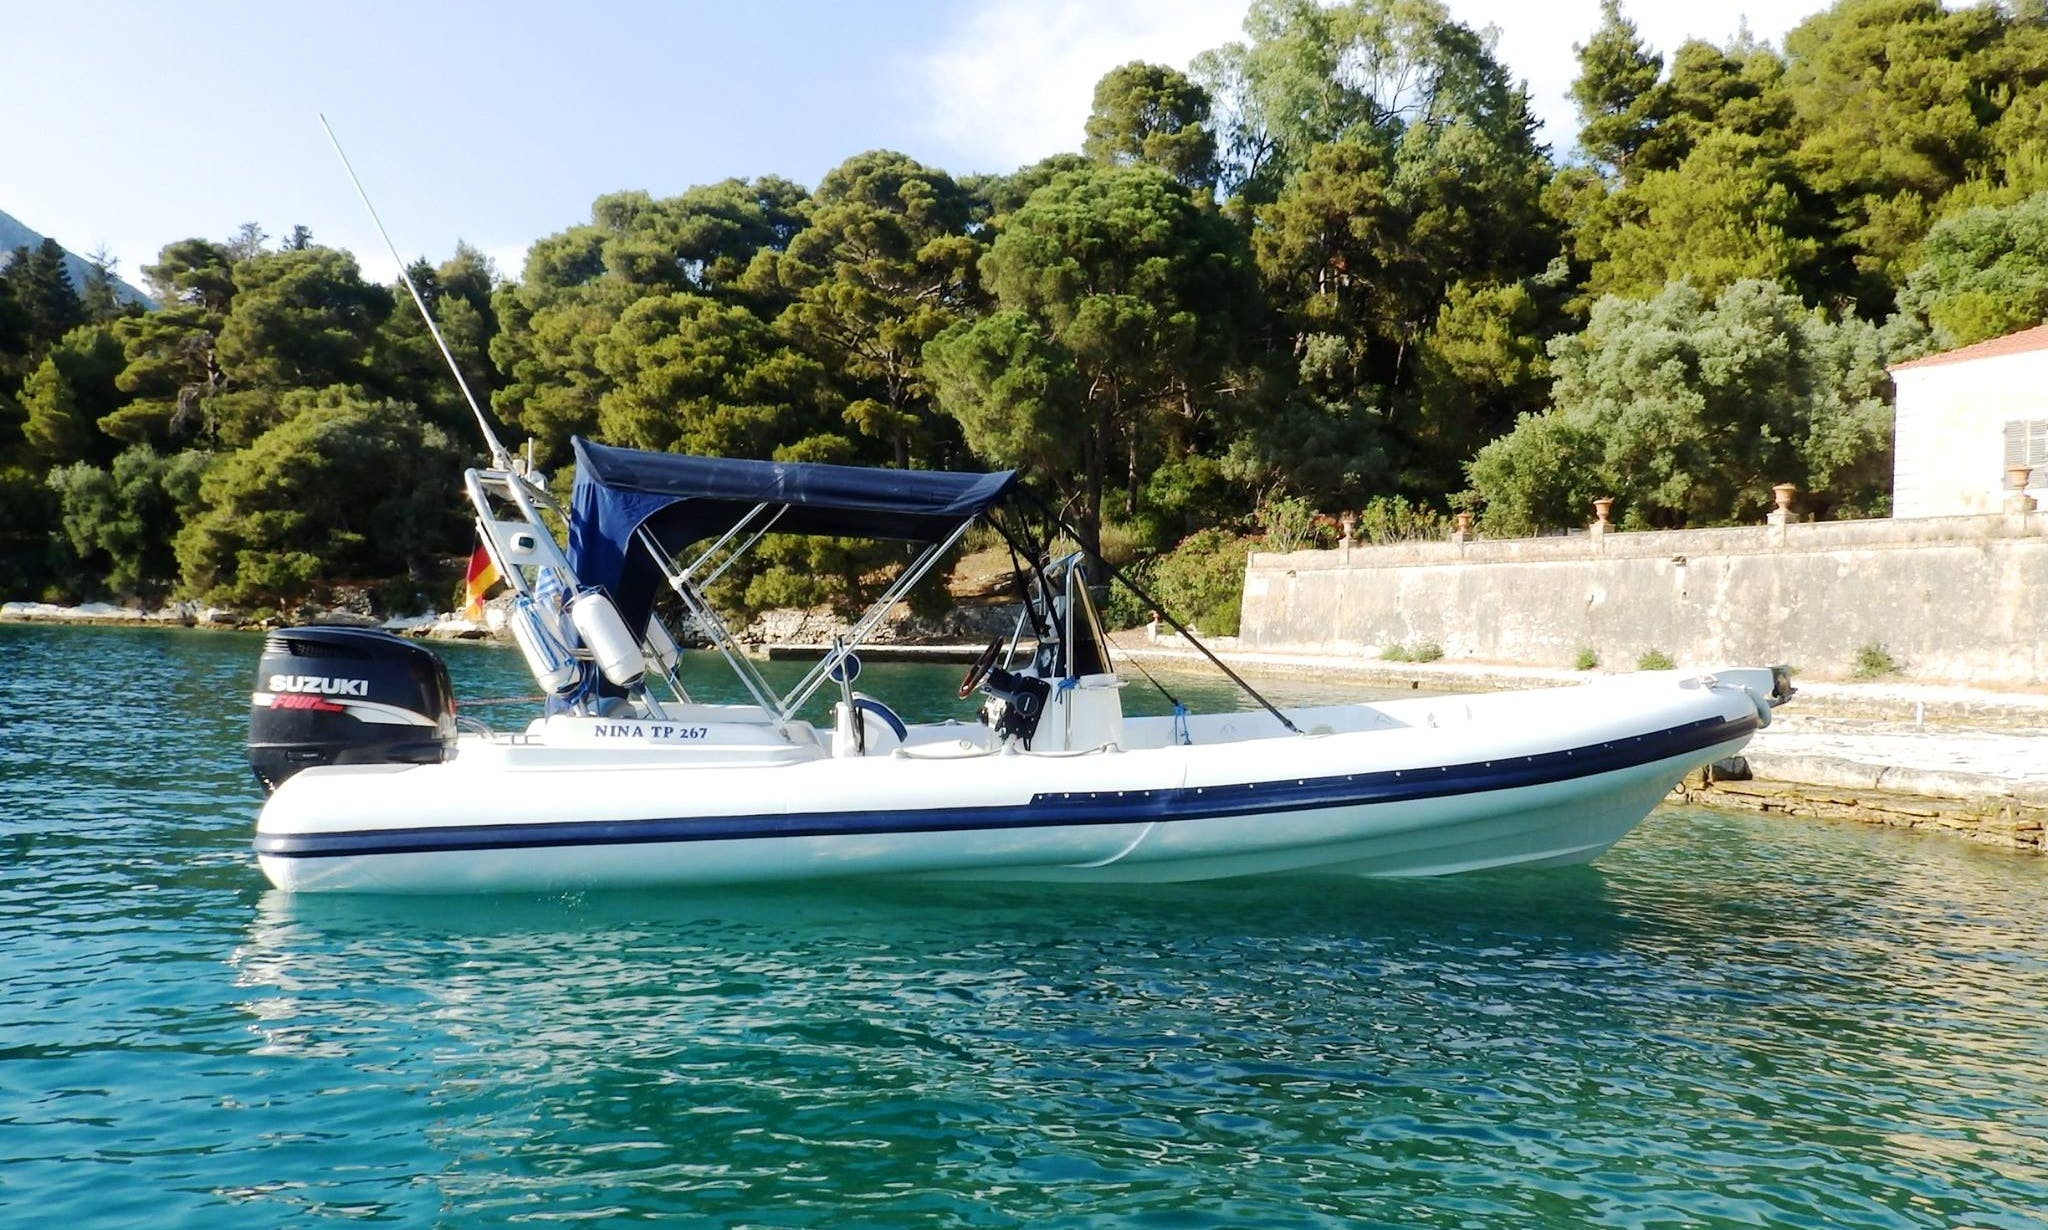 Explore Lefkada, Greece with this Winner RIB